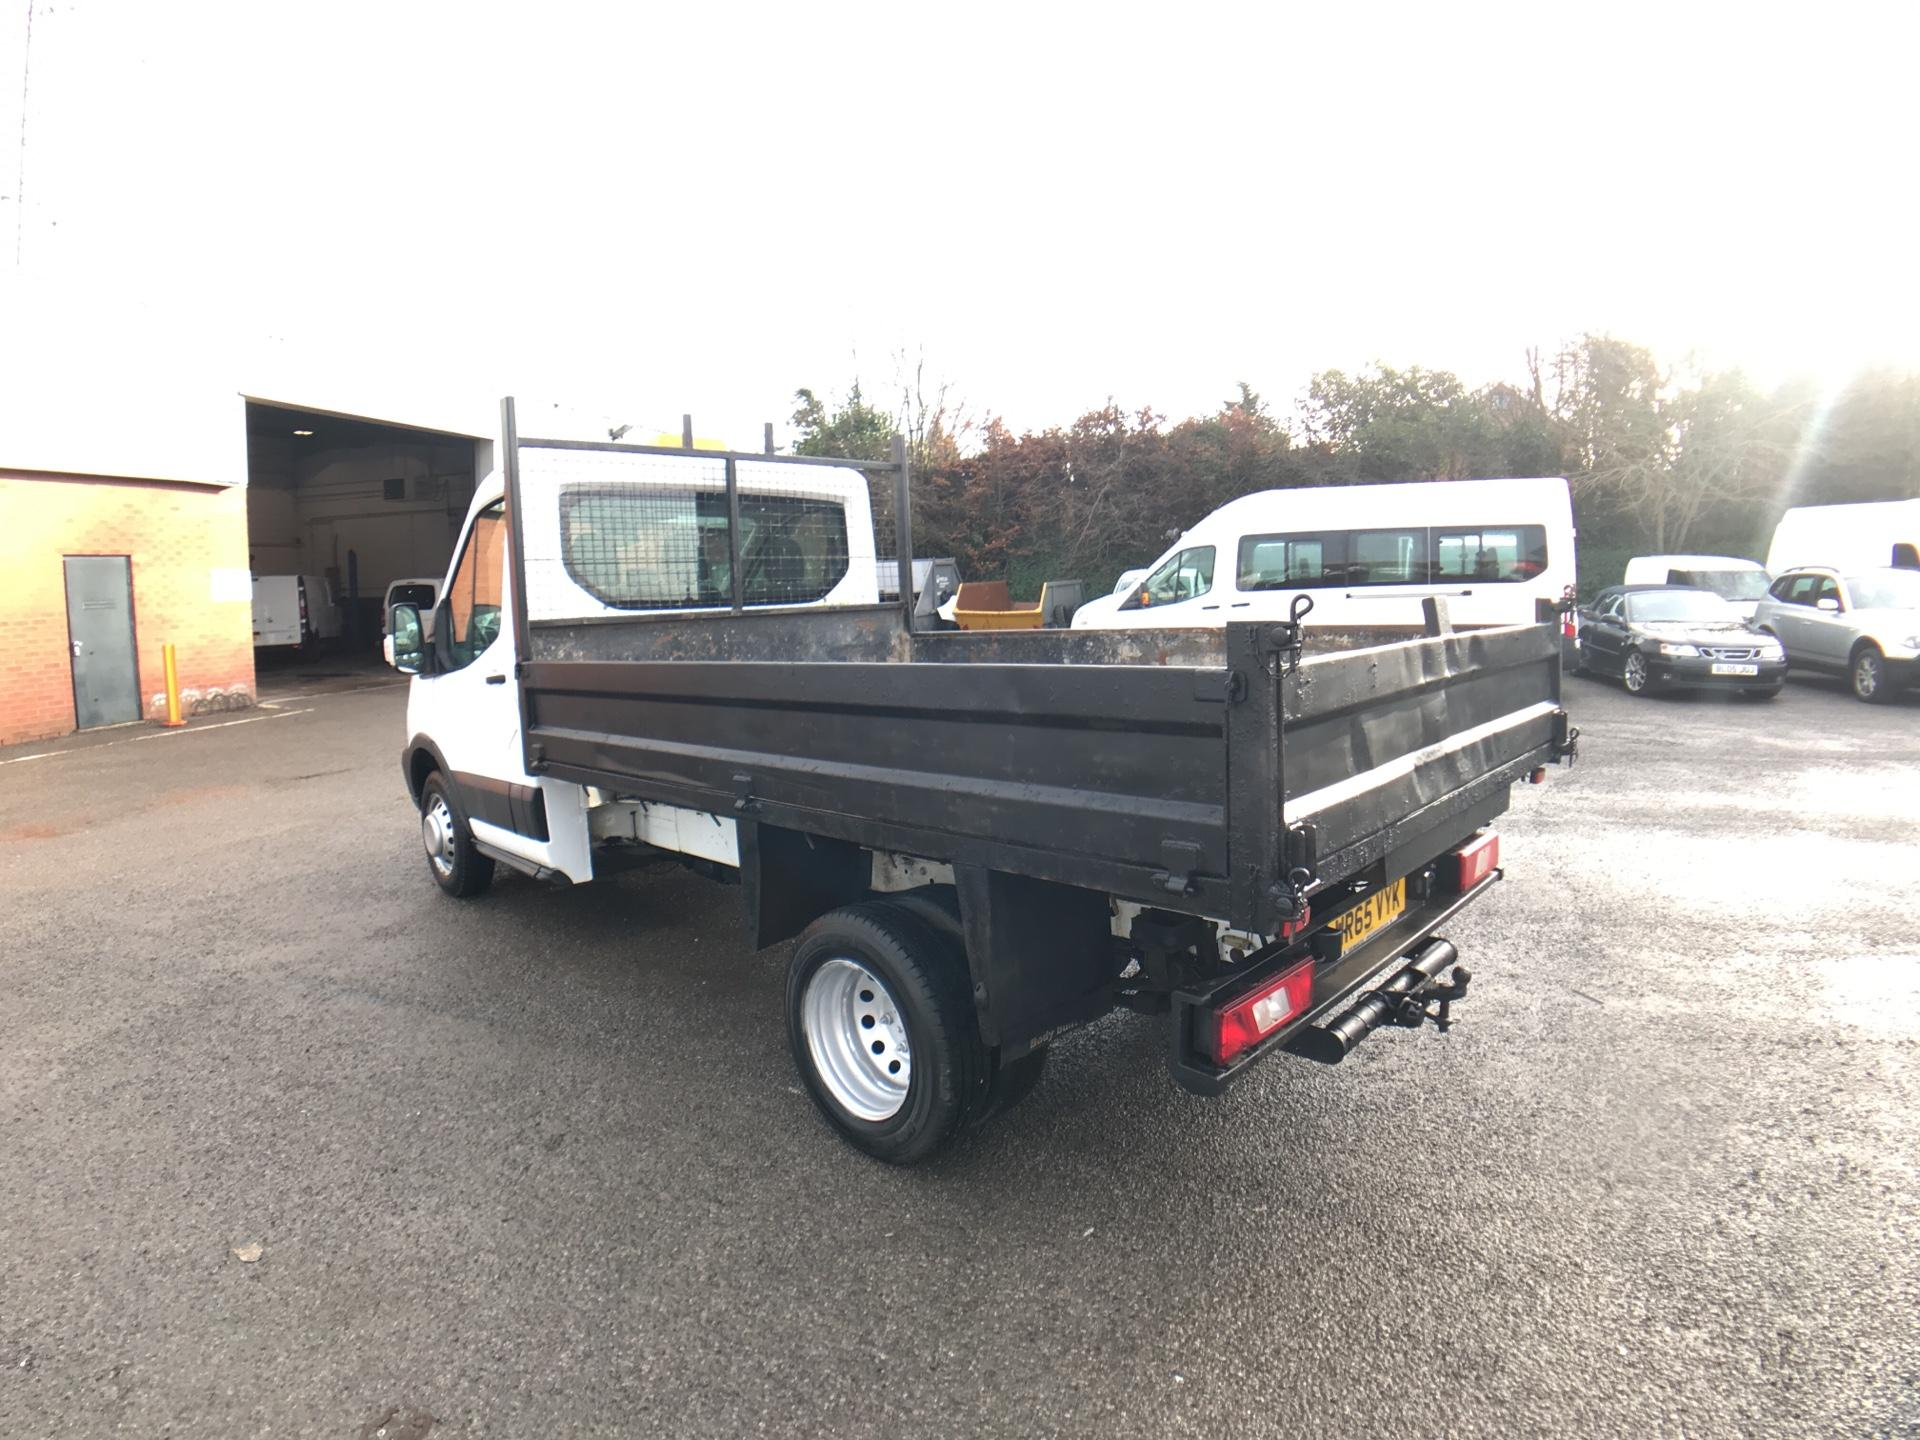 2016 Ford Transit 350 L2 SINGLE CAB TIPPER 125PS EURO 5 *VALUE RANGE VEHICLE CONDITION REFLECTED IN PRICE* (WR65VYK) Image 5